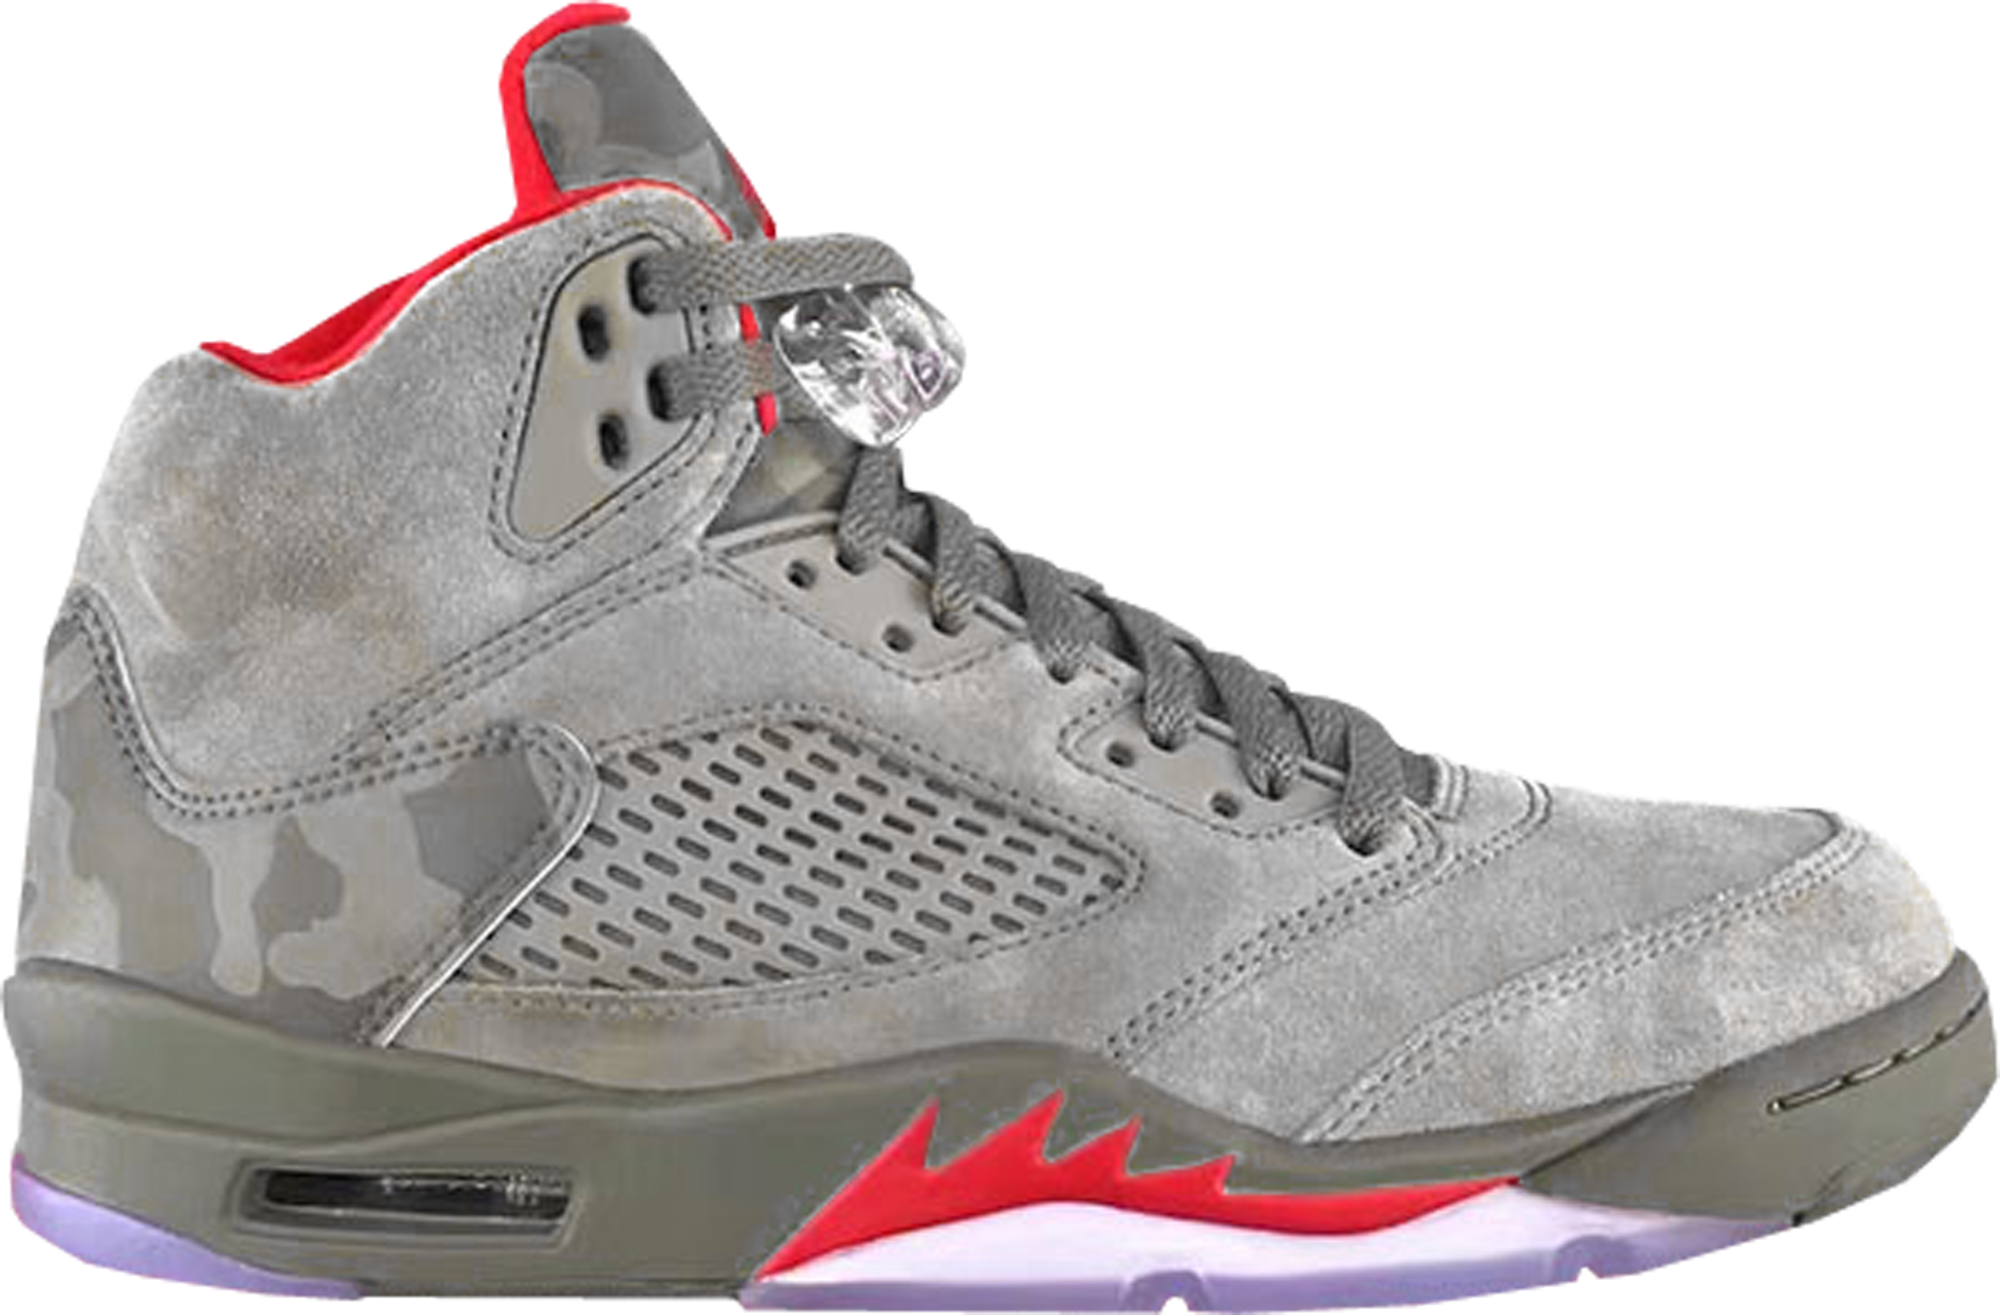 meet df09e 70d15 Air Jordan 5 Retro P51 Camo - StockX News